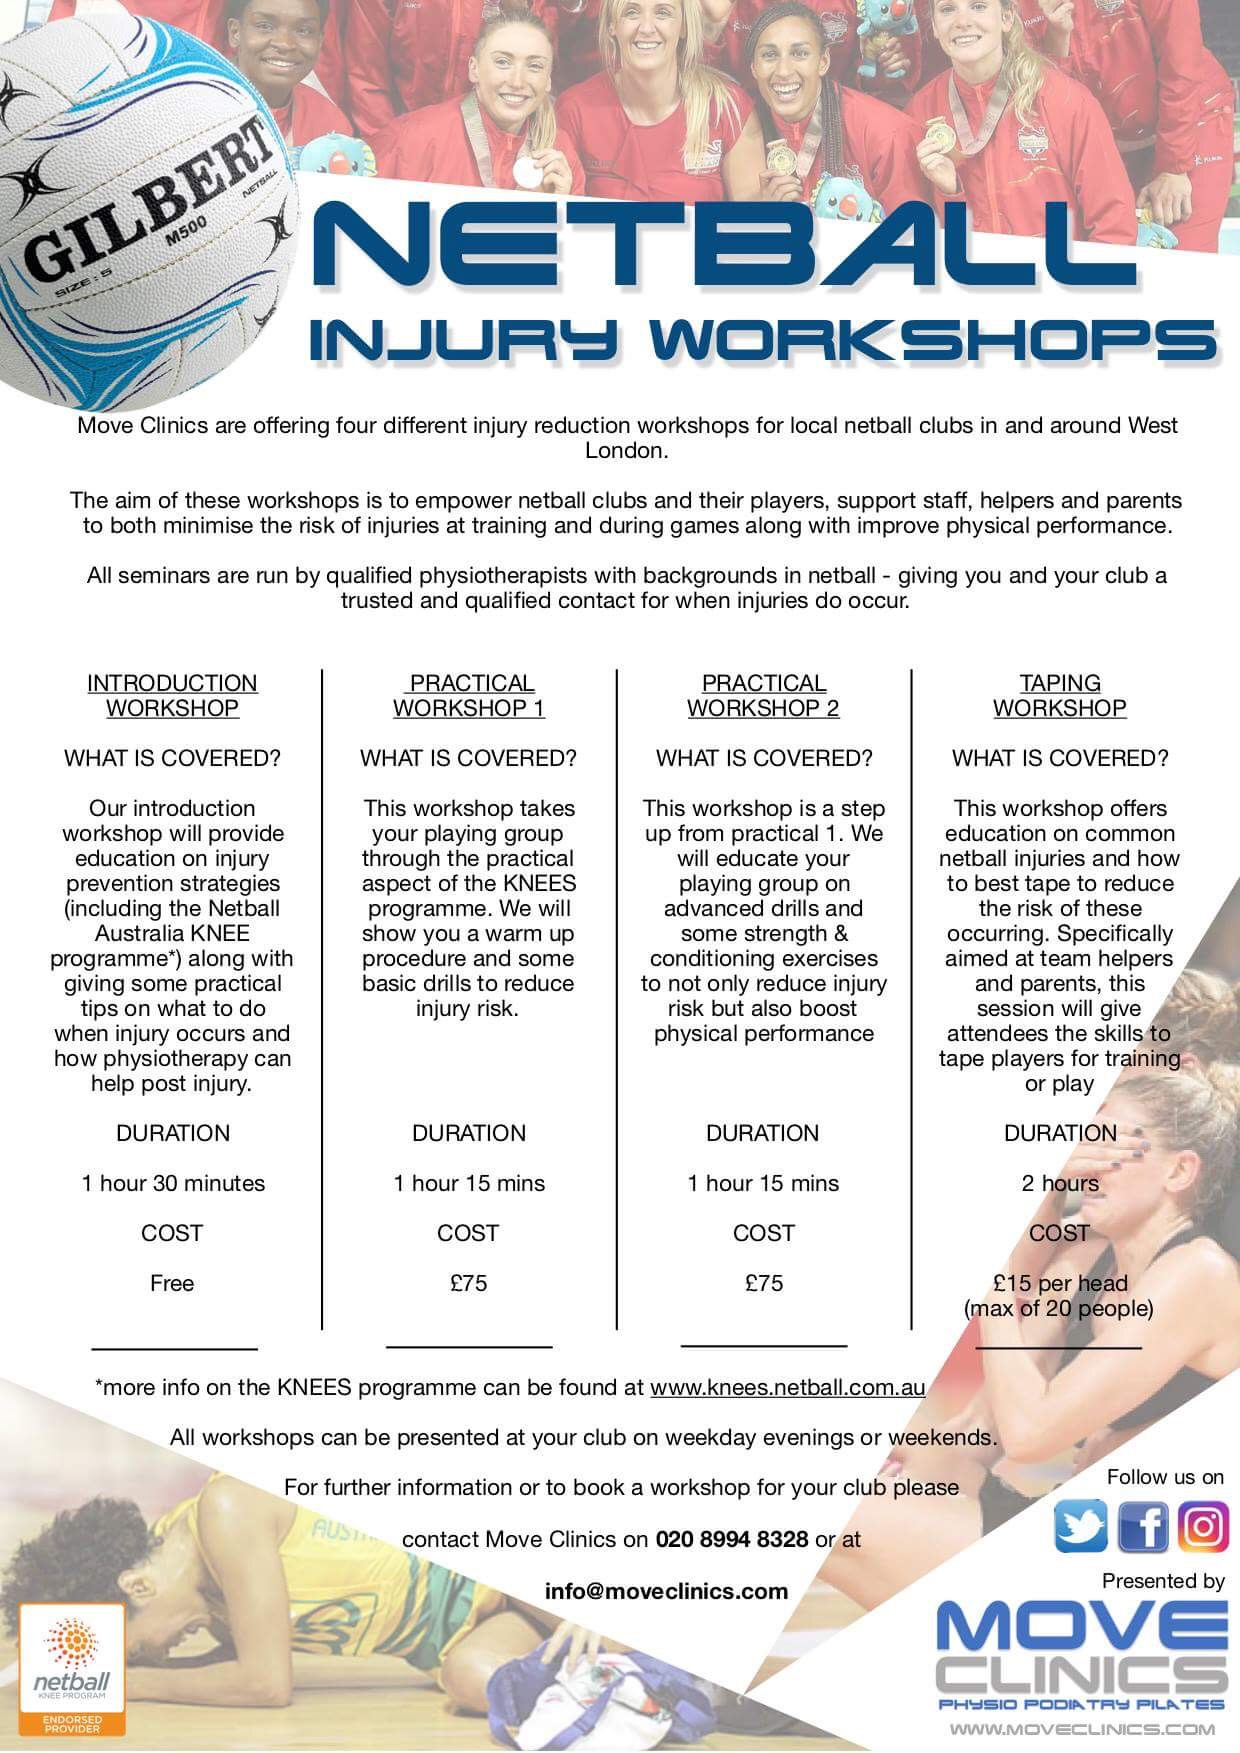 Netball Injury Workshops